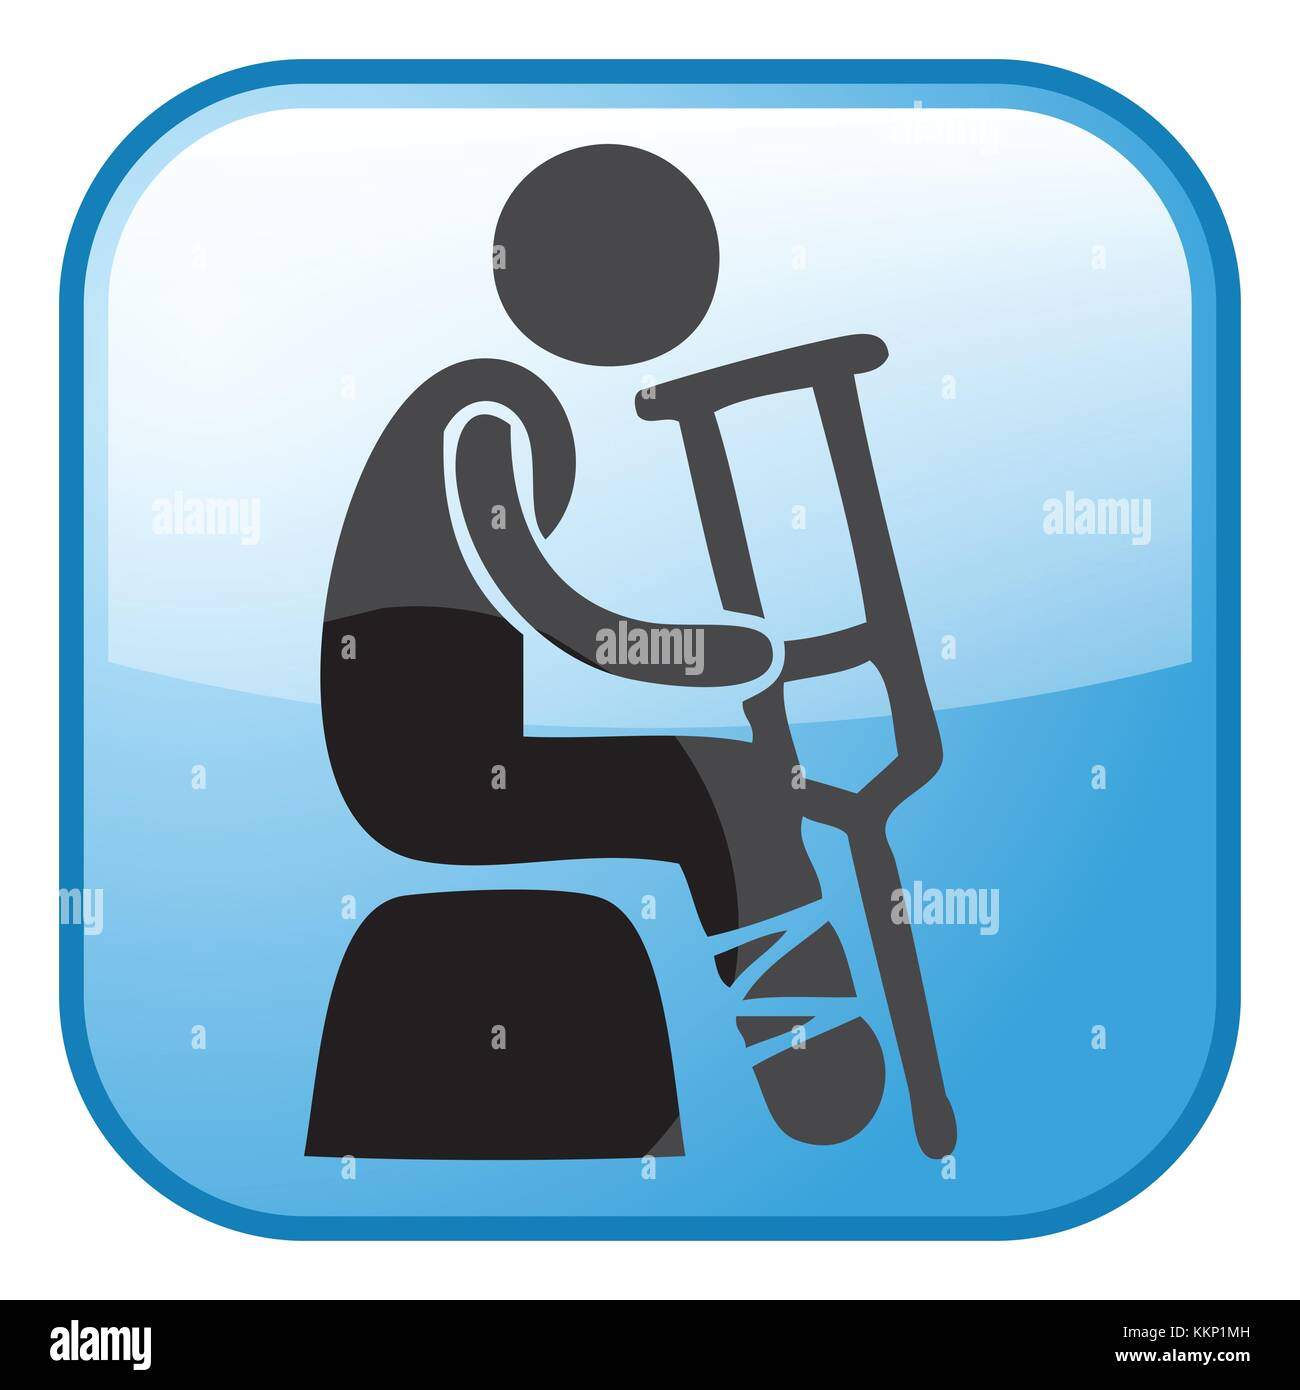 Disability Icons - Stock Image